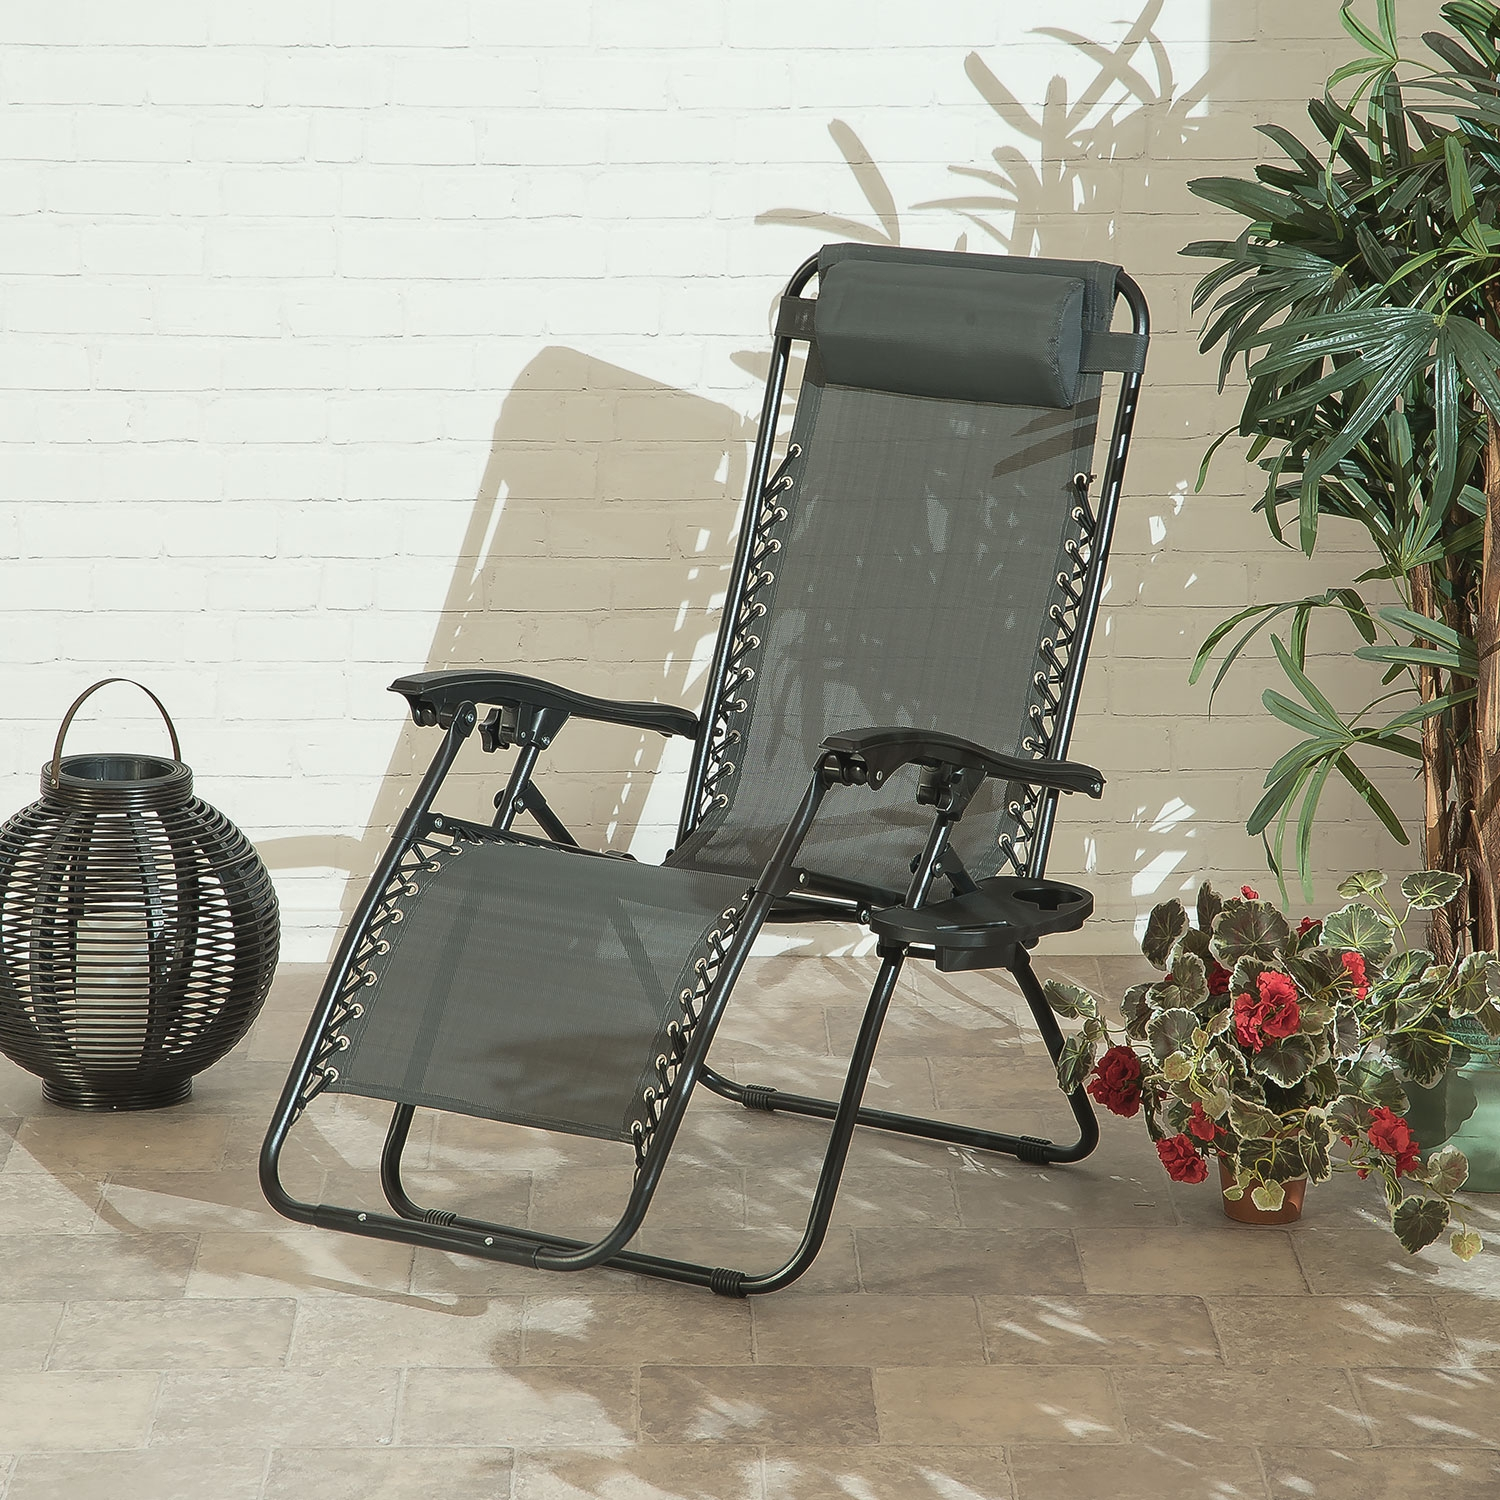 Image of Suntime Royale Zero Gravity Relaxer With Cup holder (Charcoal)